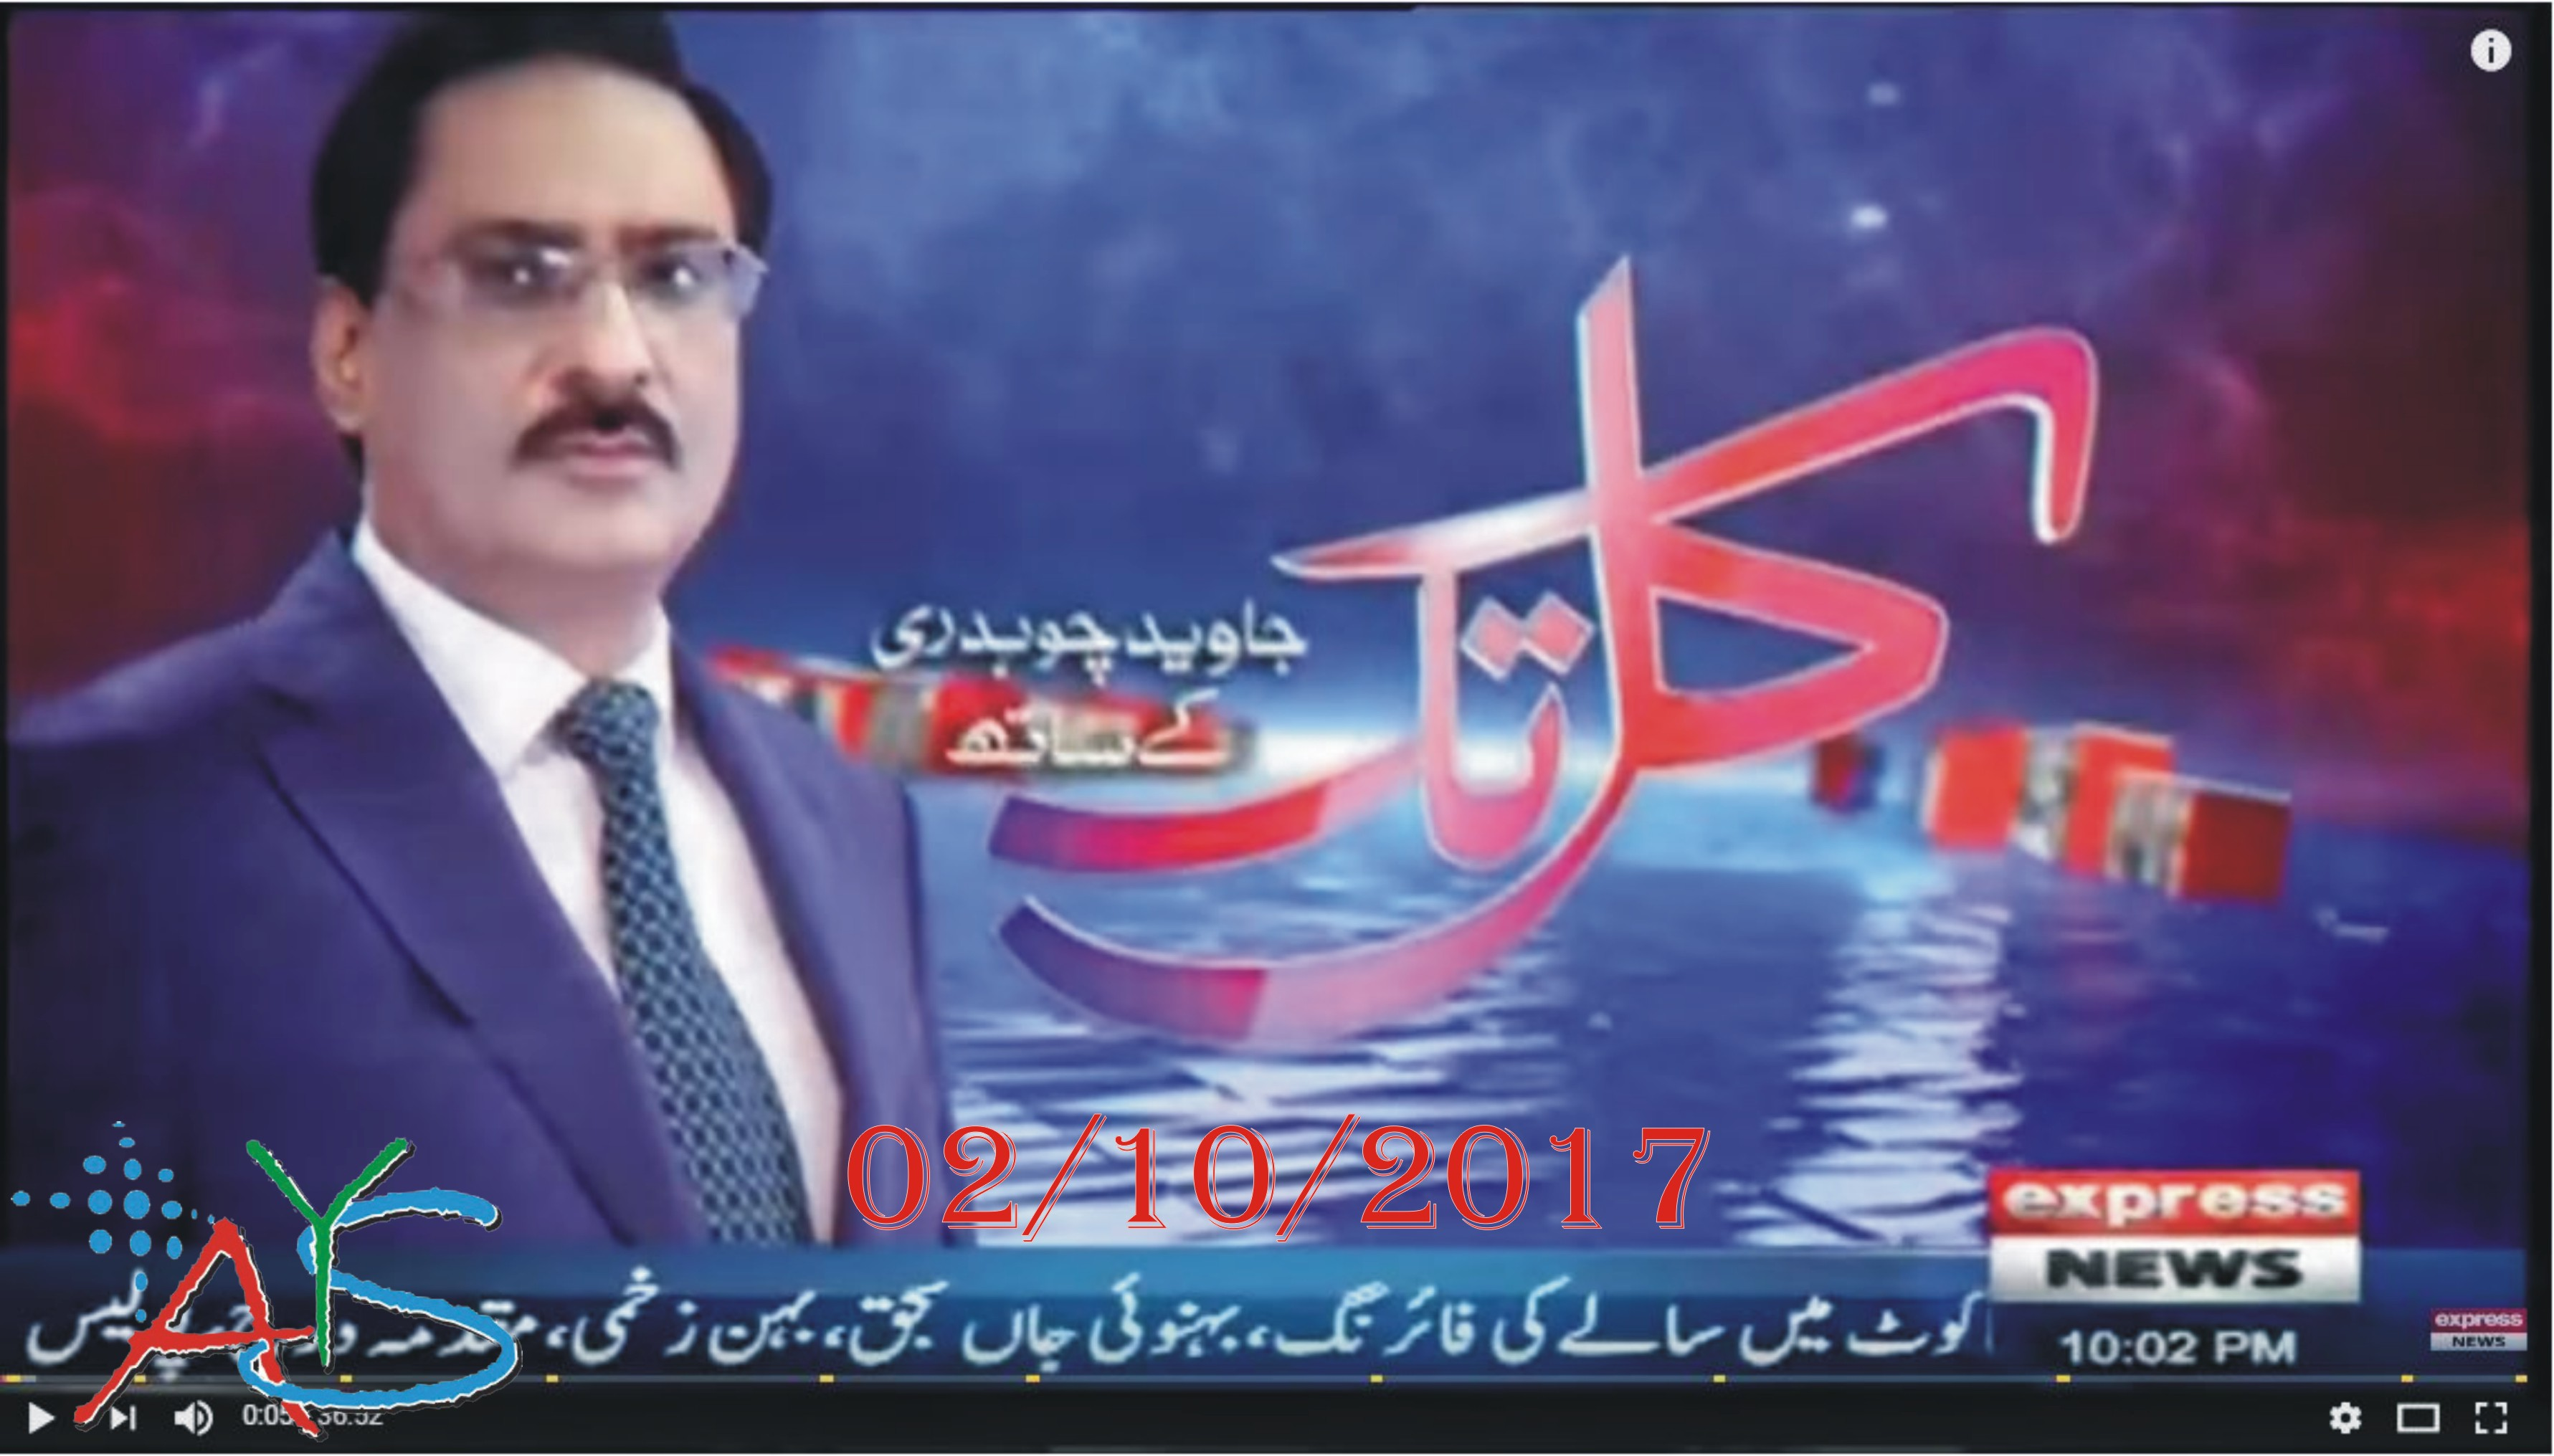 02 Oct 2017 - Kal Tak with Javed Chaudhry - 2 October 2017 | Express News